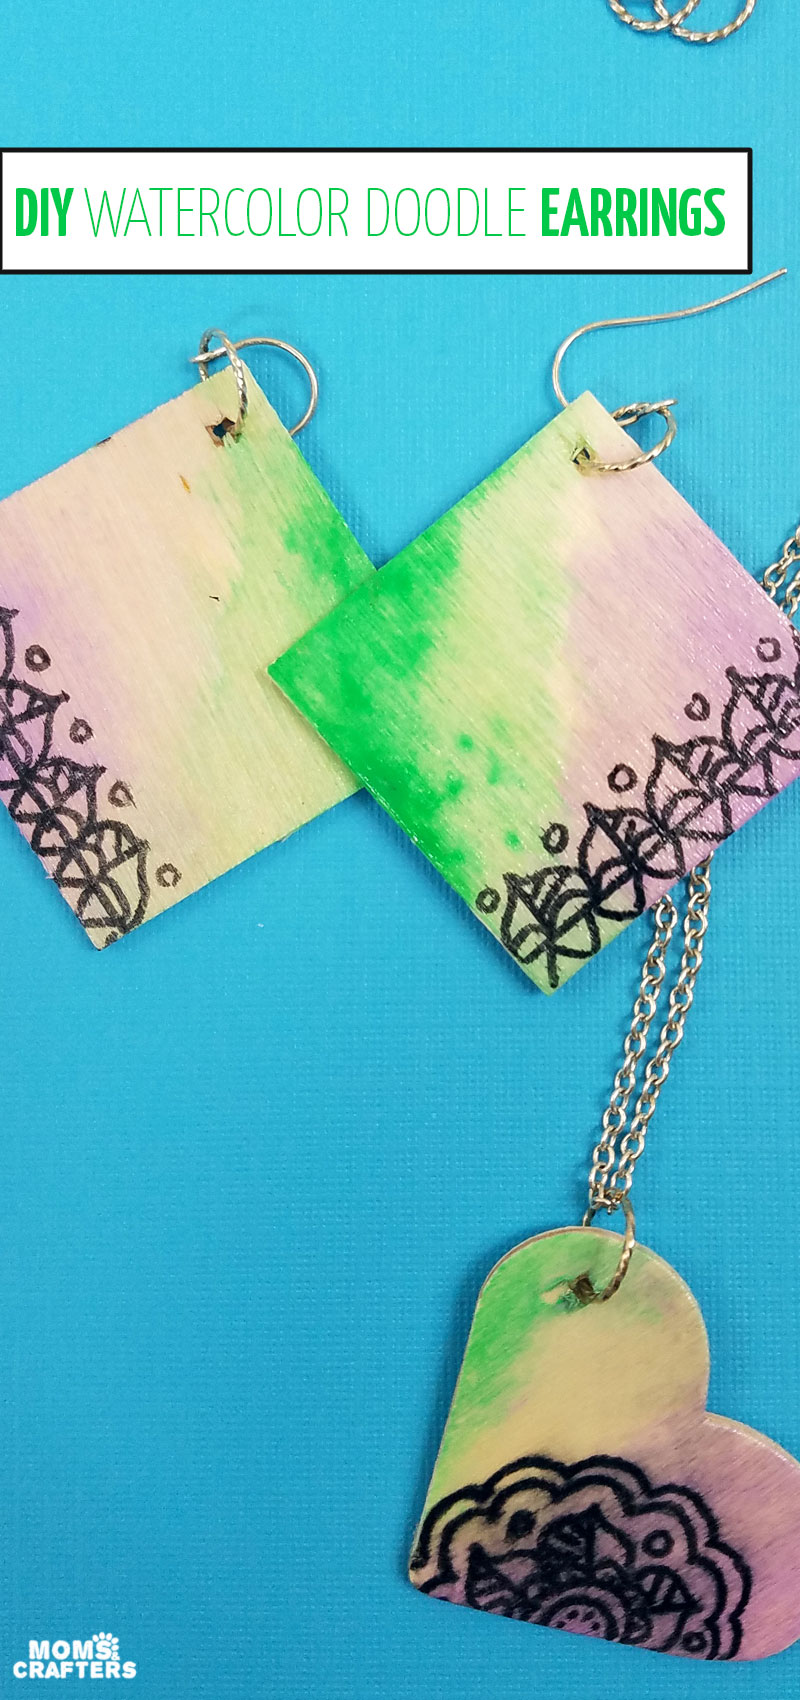 Click to learn how to make these watercolor doodle earrings - a fun and easy jewelry making project for teens and tweens, and great for beginners too!